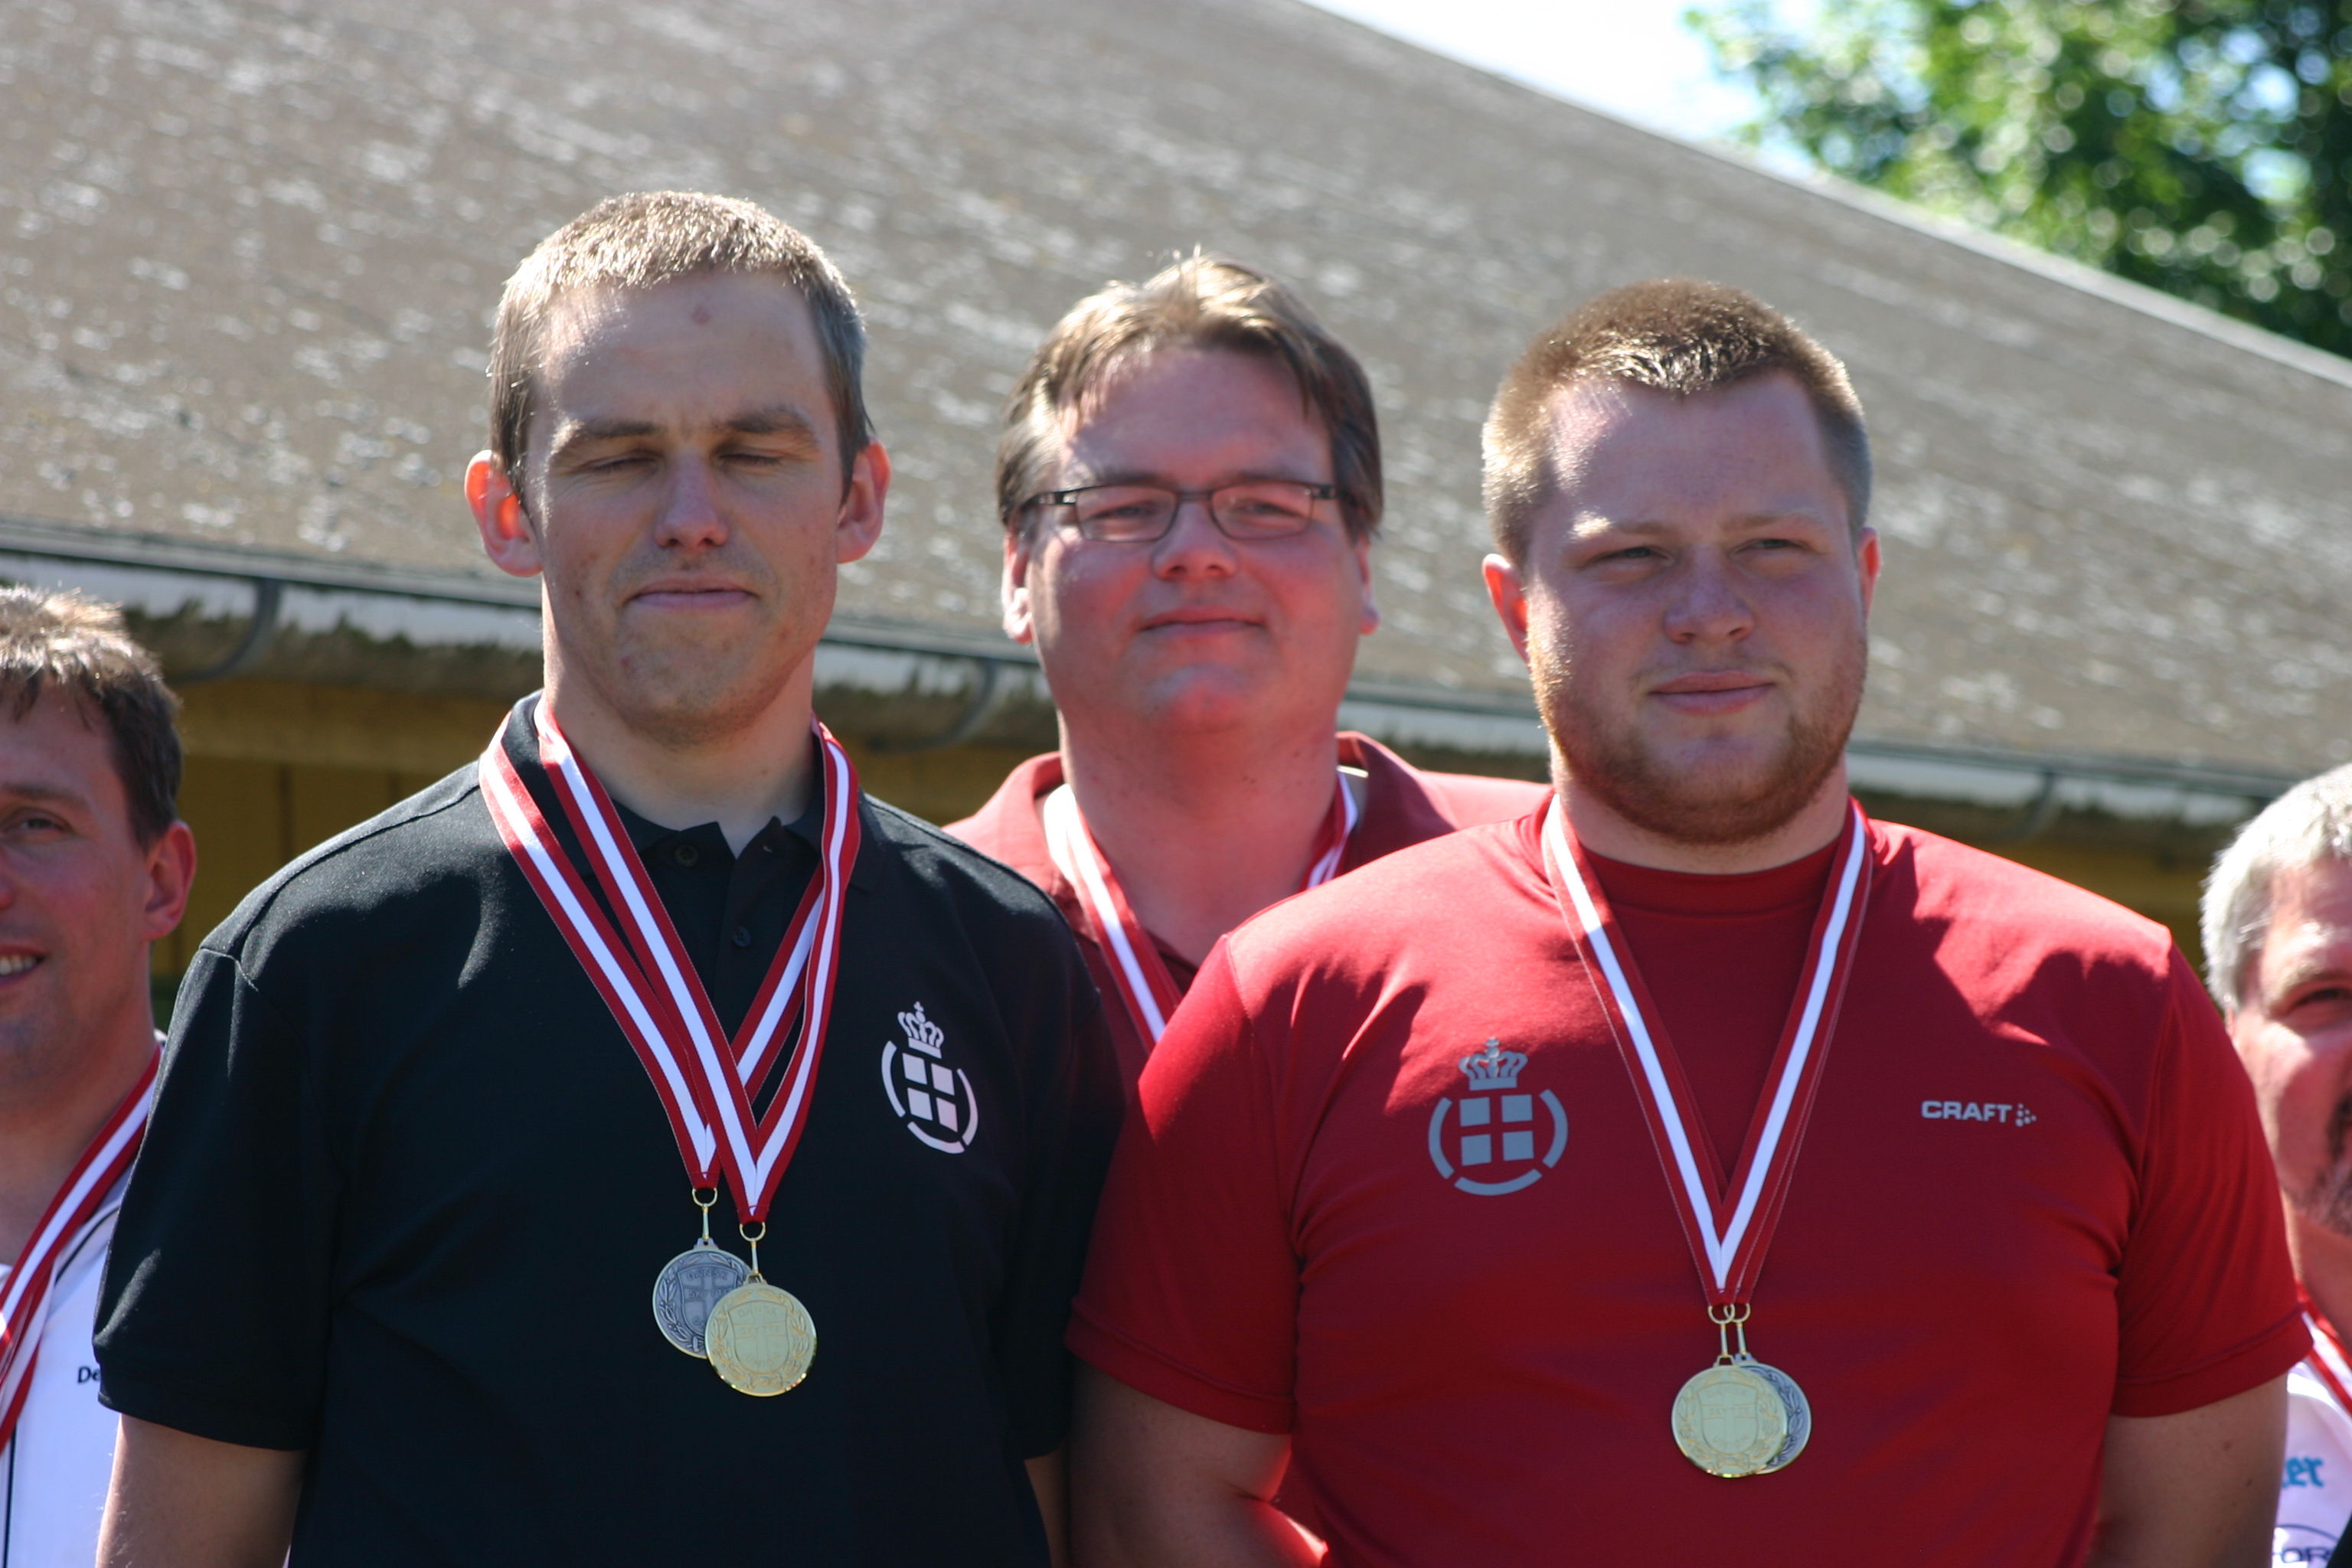 wc_2011_std-_pistol_winner_team